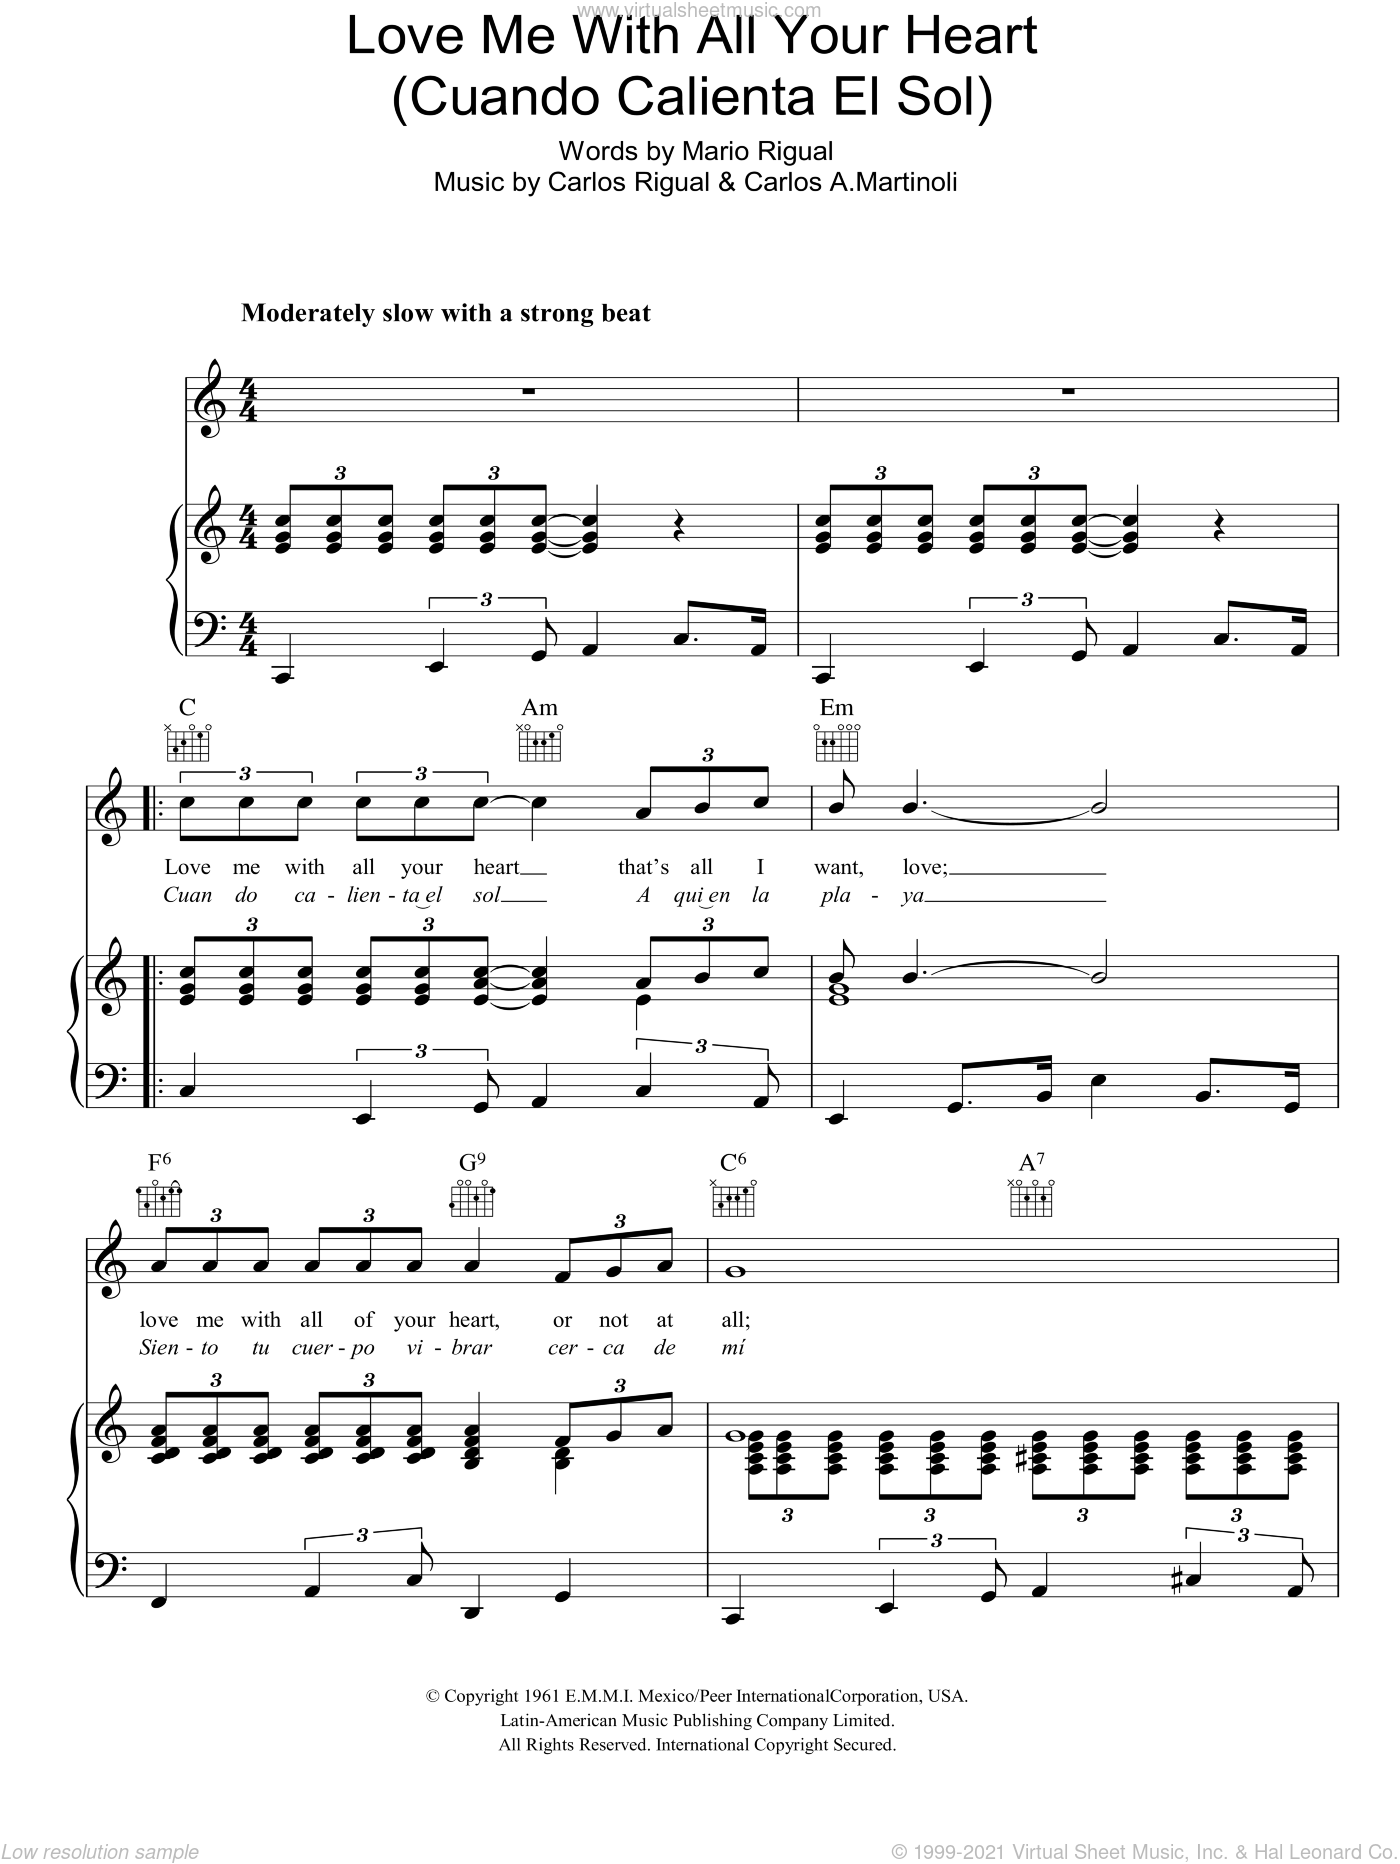 Love Me With All Your Heart (Cuando Calienta El Sol) sheet music for voice, piano or guitar by Carlos A. Martinoli